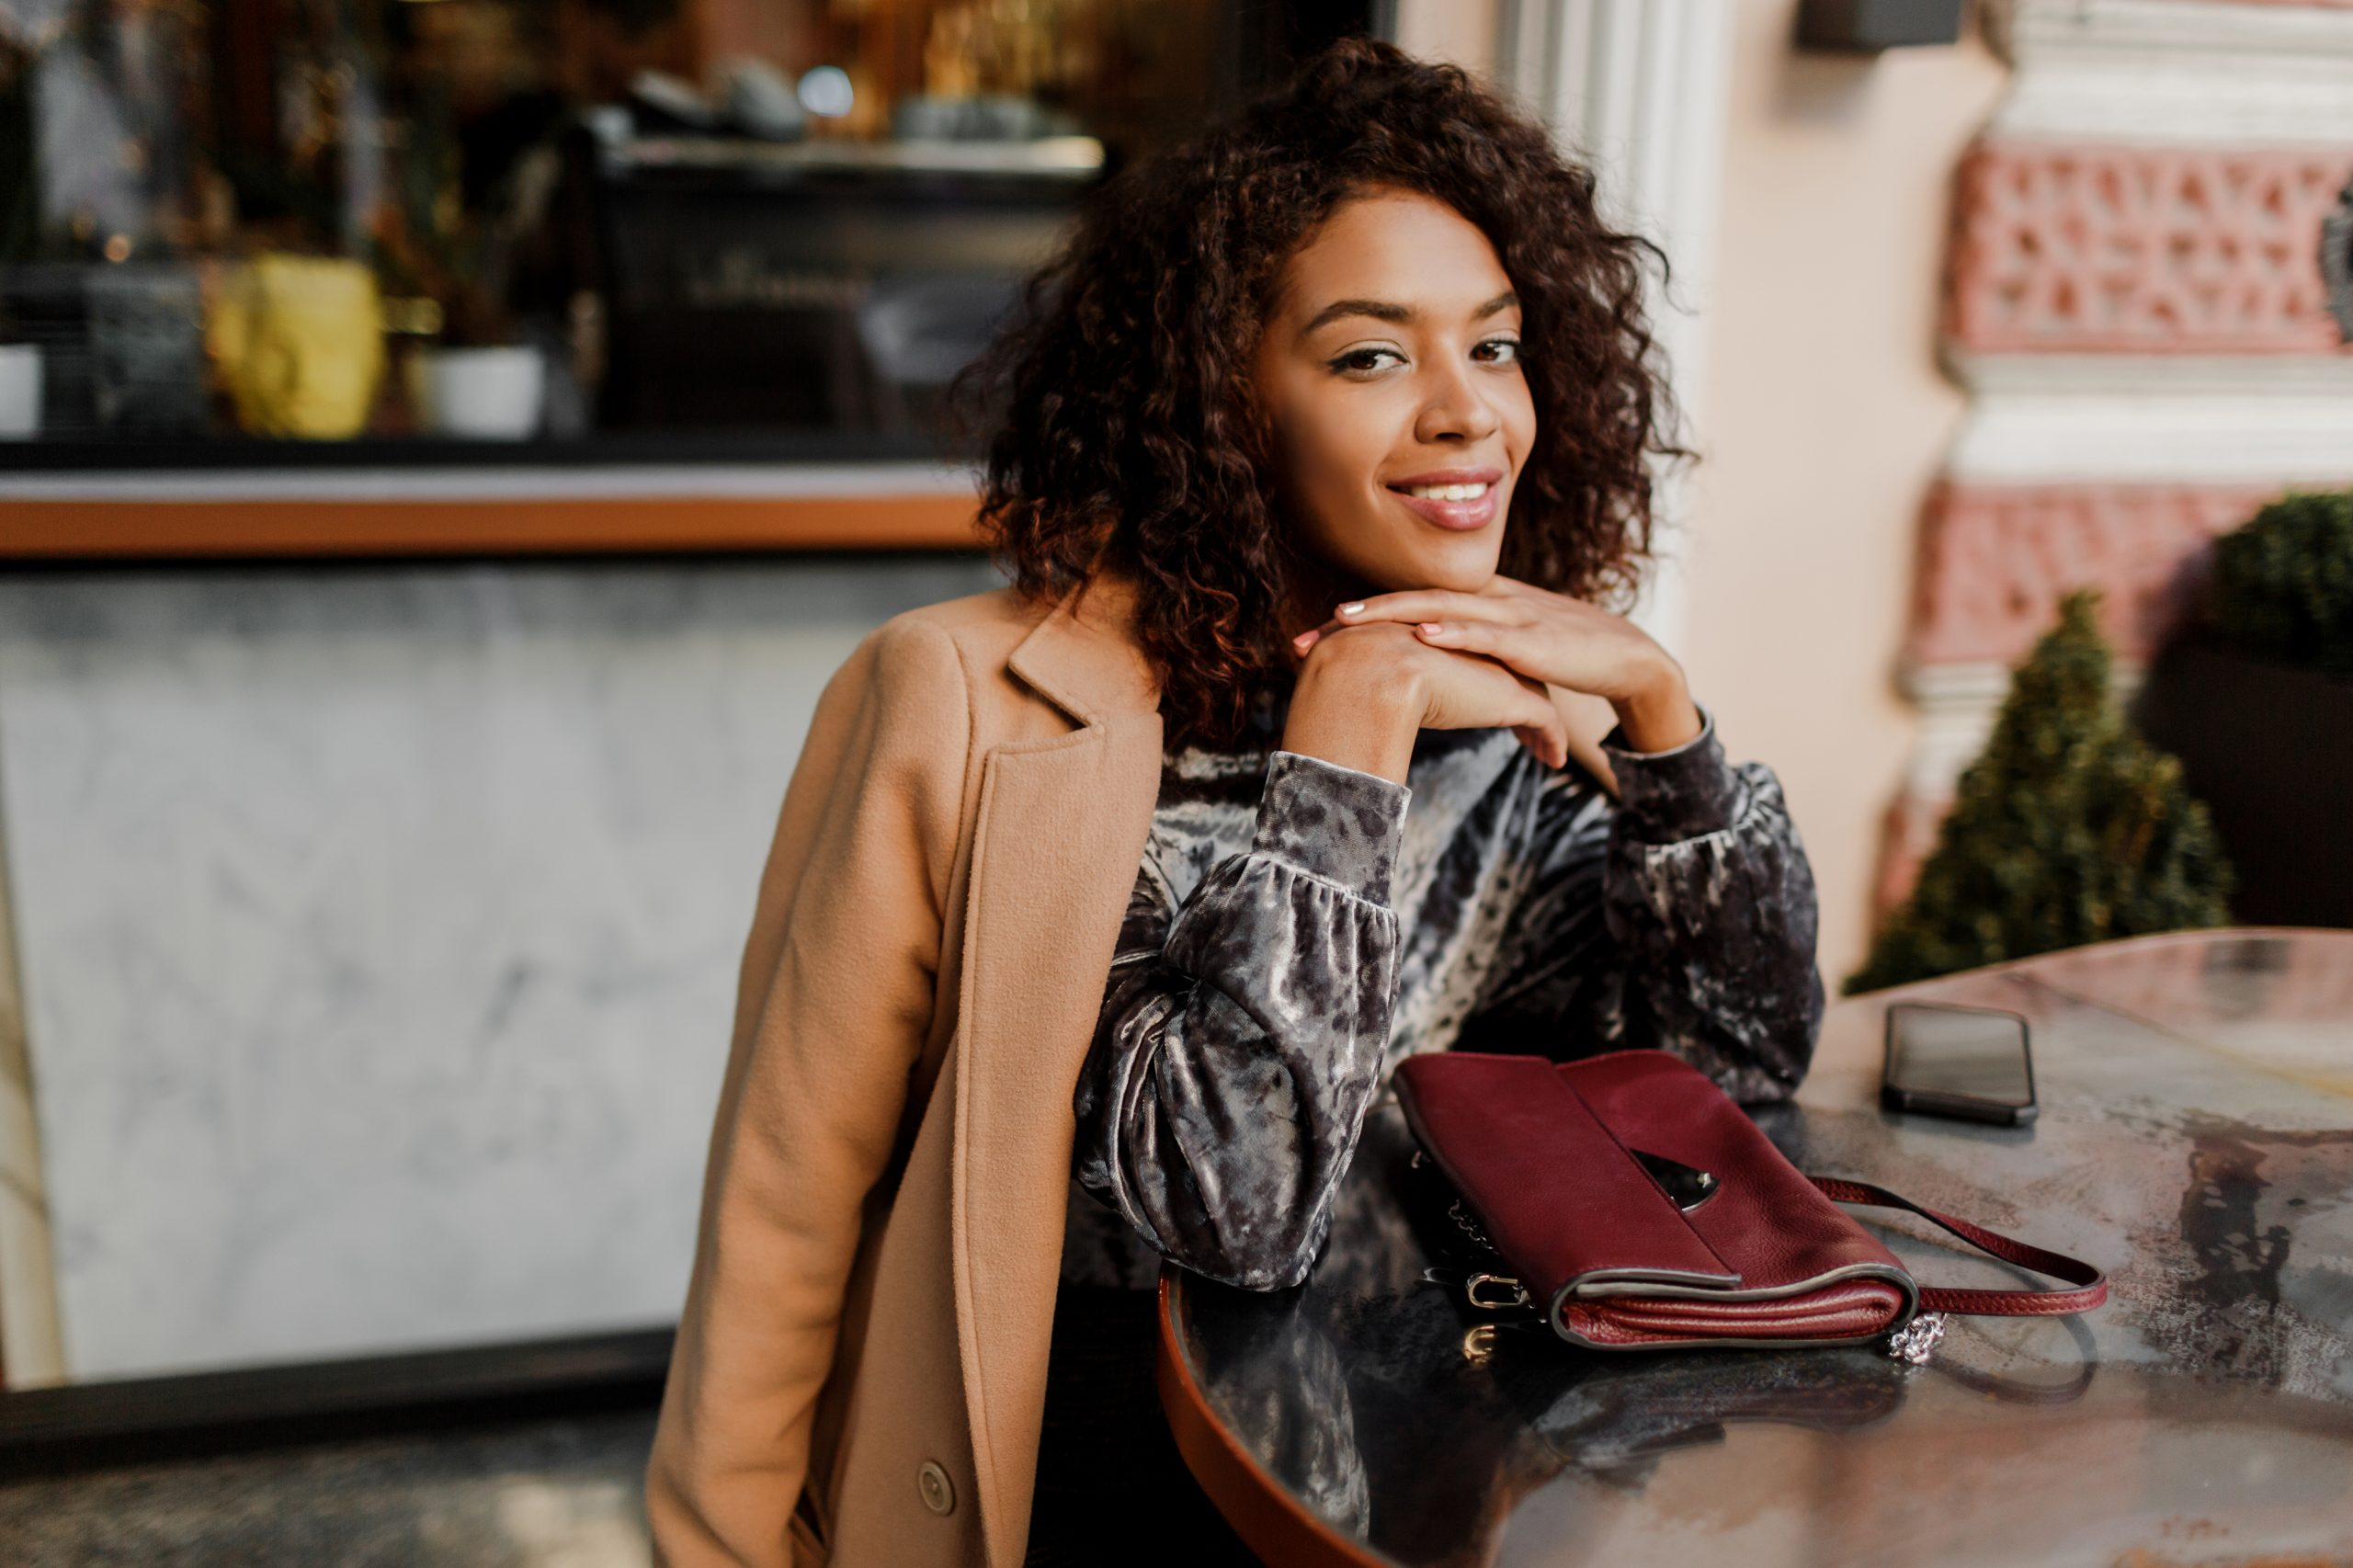 Outdoor  portrait of  beautiful  smiling black woman with stylish afro hairs sitting in cafe in Paris. Wearing trendy velvet dress and beige coat. Luxury bag.